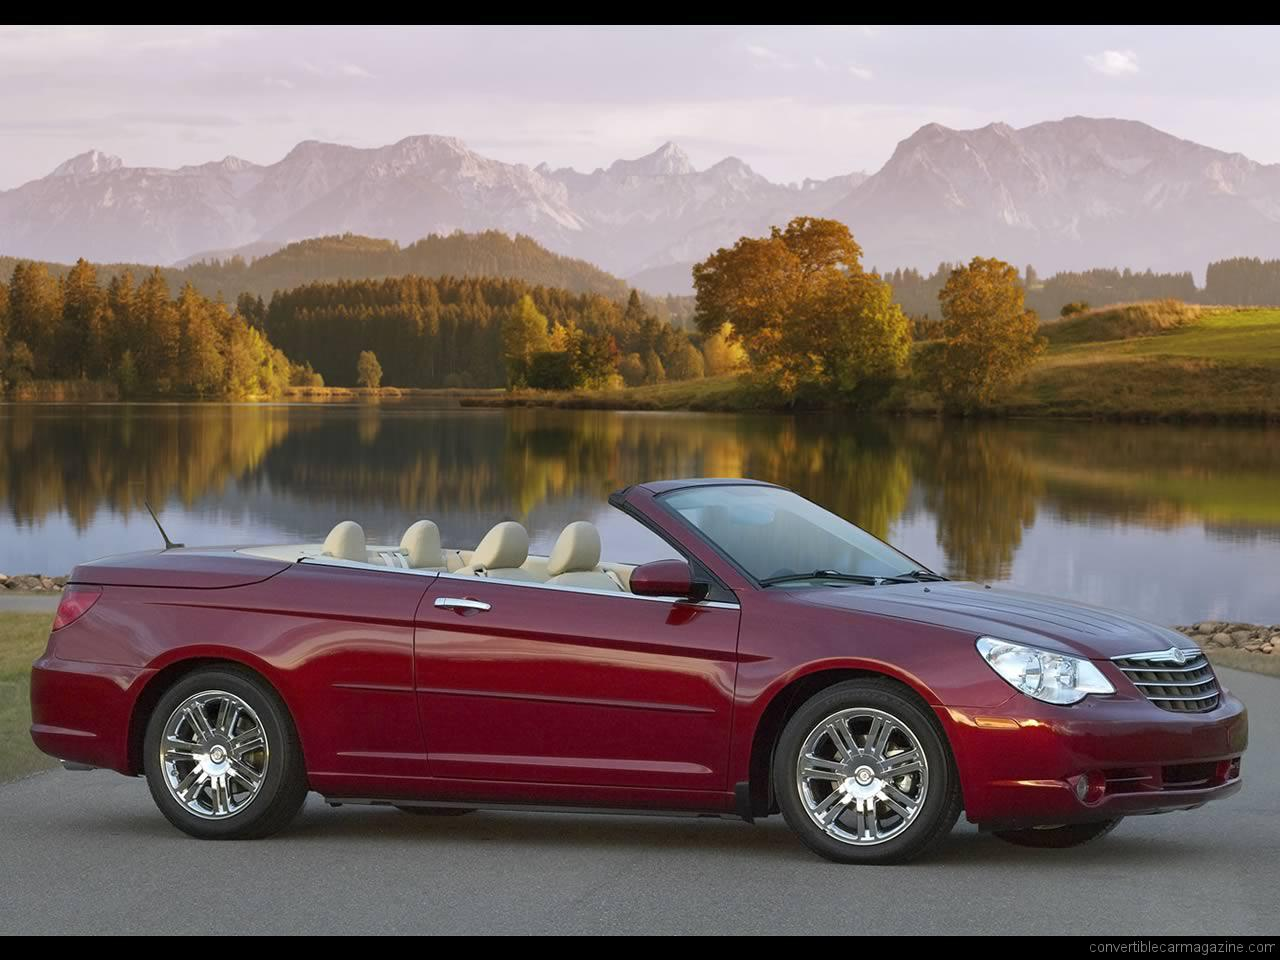 chrysler sebring convertible buying guide. Black Bedroom Furniture Sets. Home Design Ideas